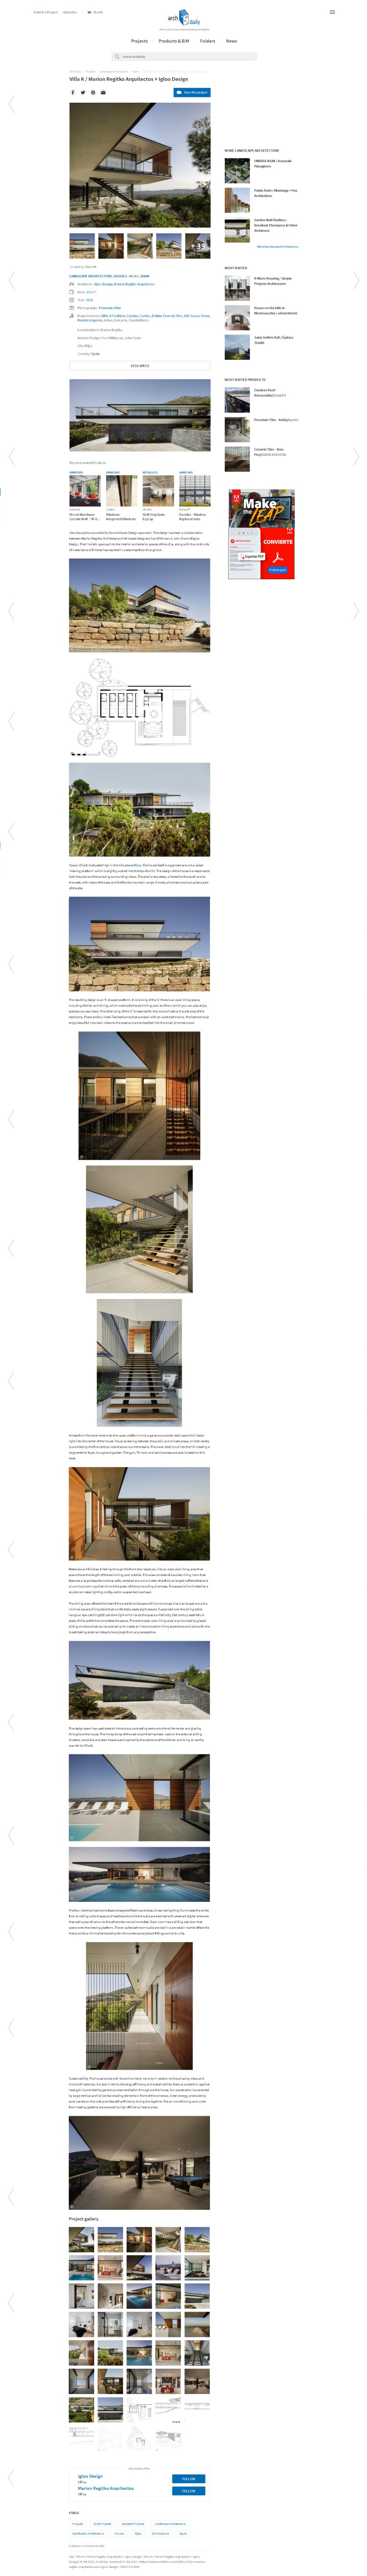 archdaily publication